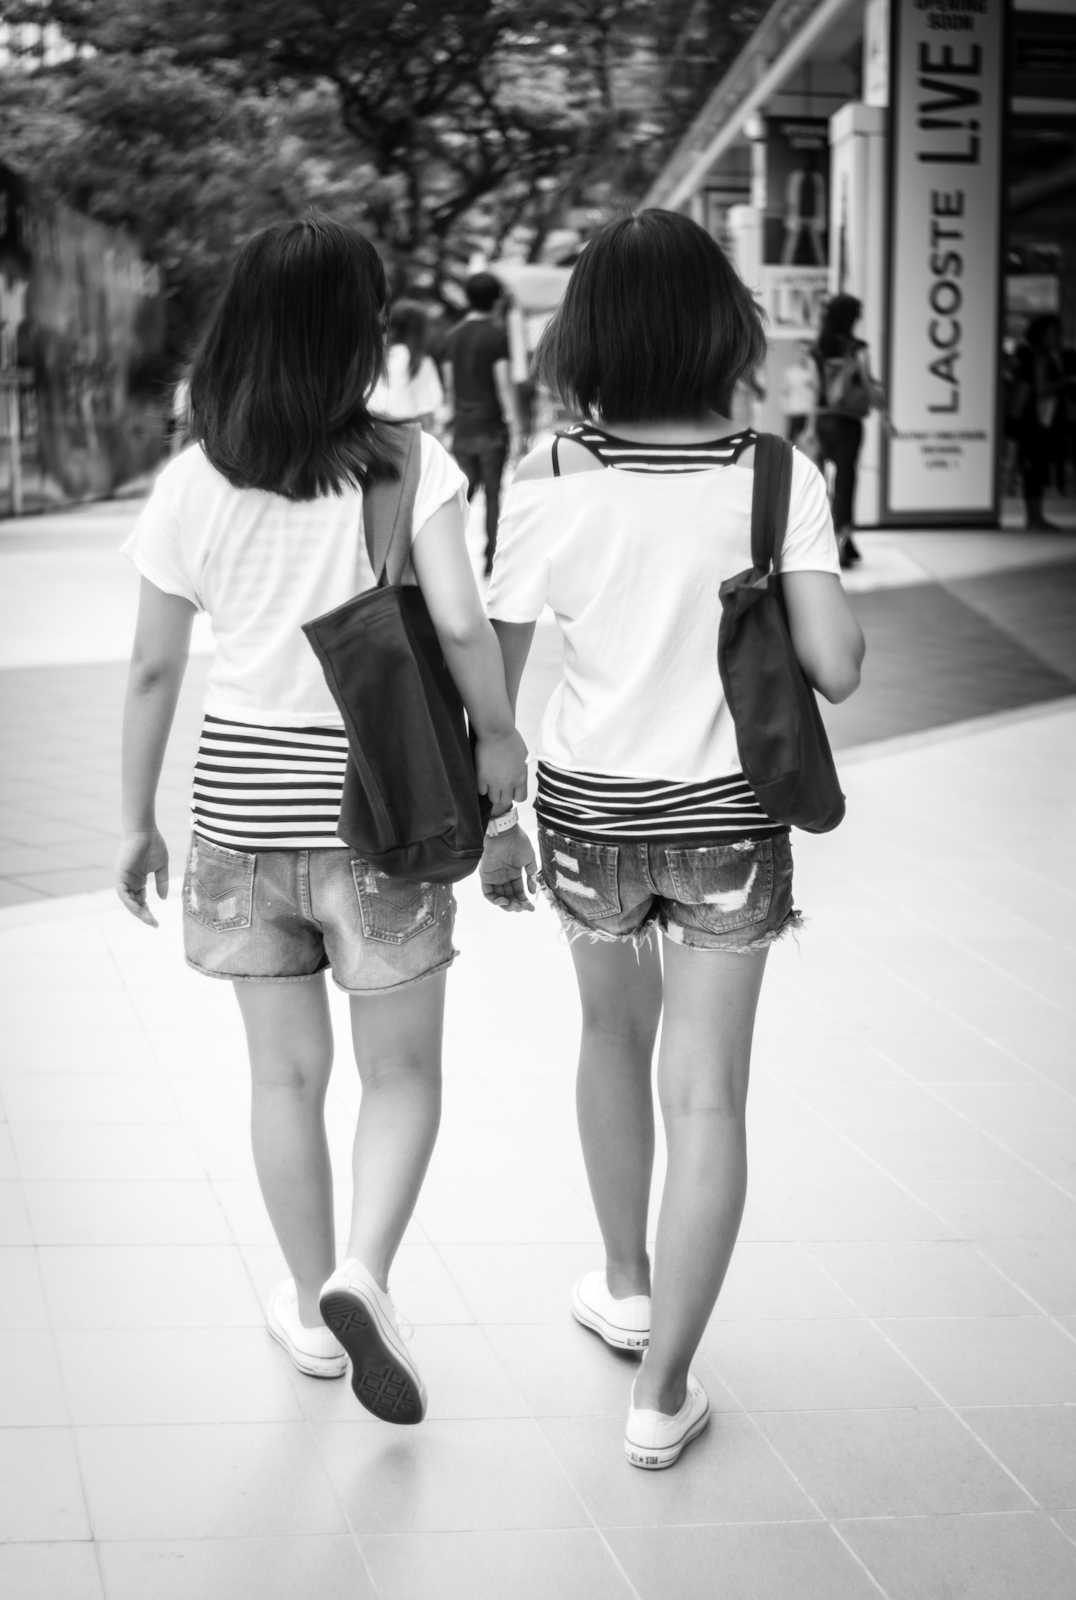 Two girls in almost identical clothing, shoes and bags